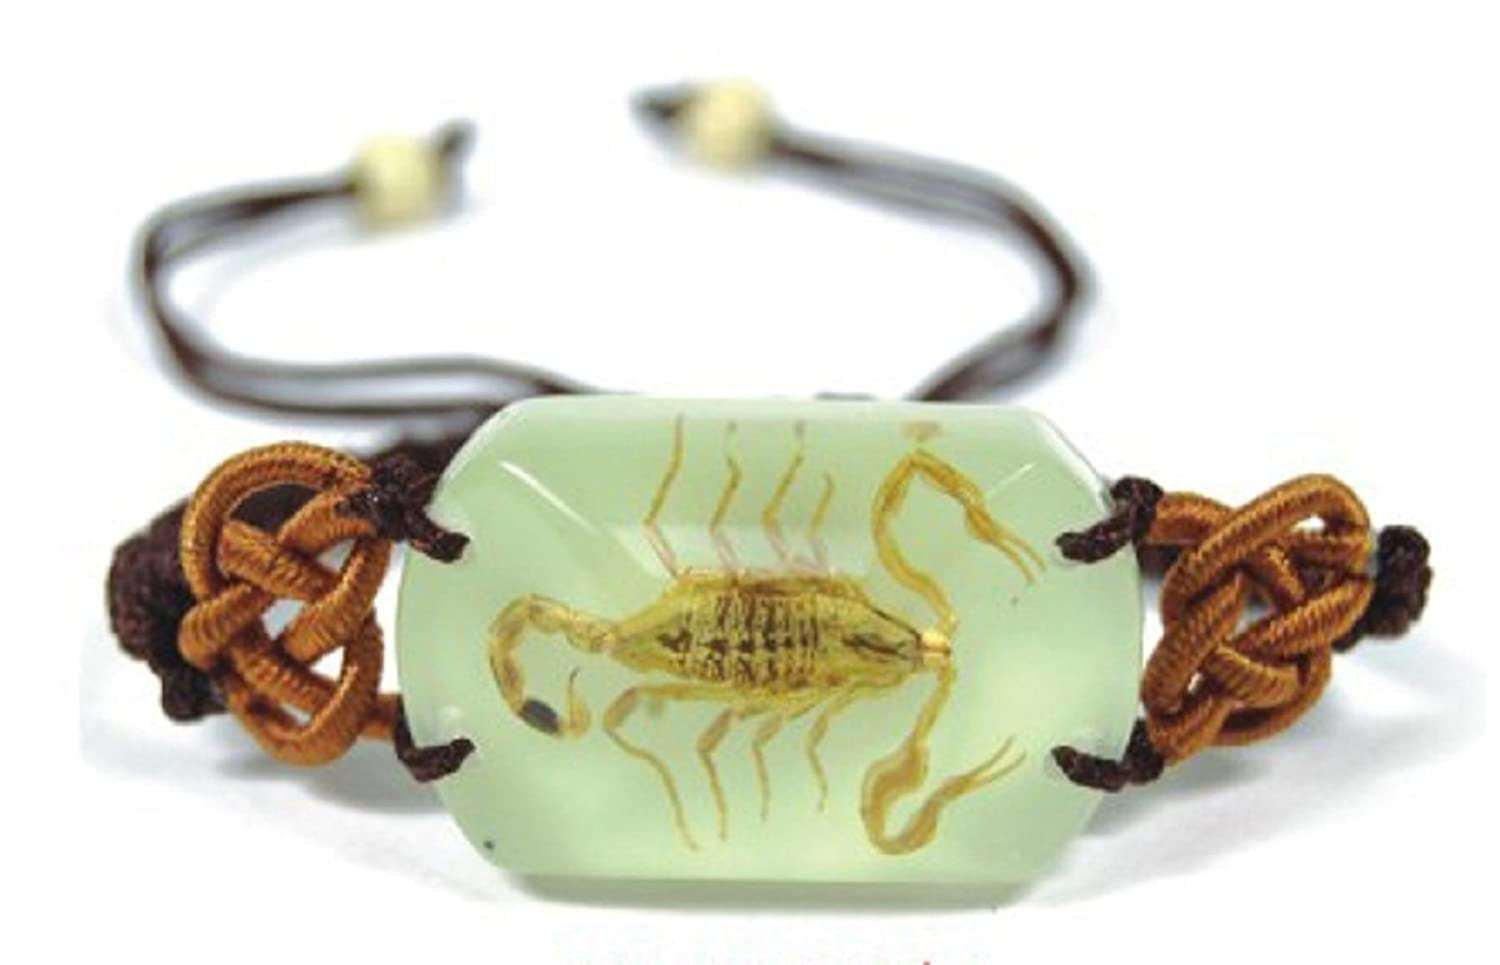 REAL GOLDEN SCORPION GLOW LUCITE BRACELET BANGLE INSECT JEWELRY TAXIDERMY GIFT